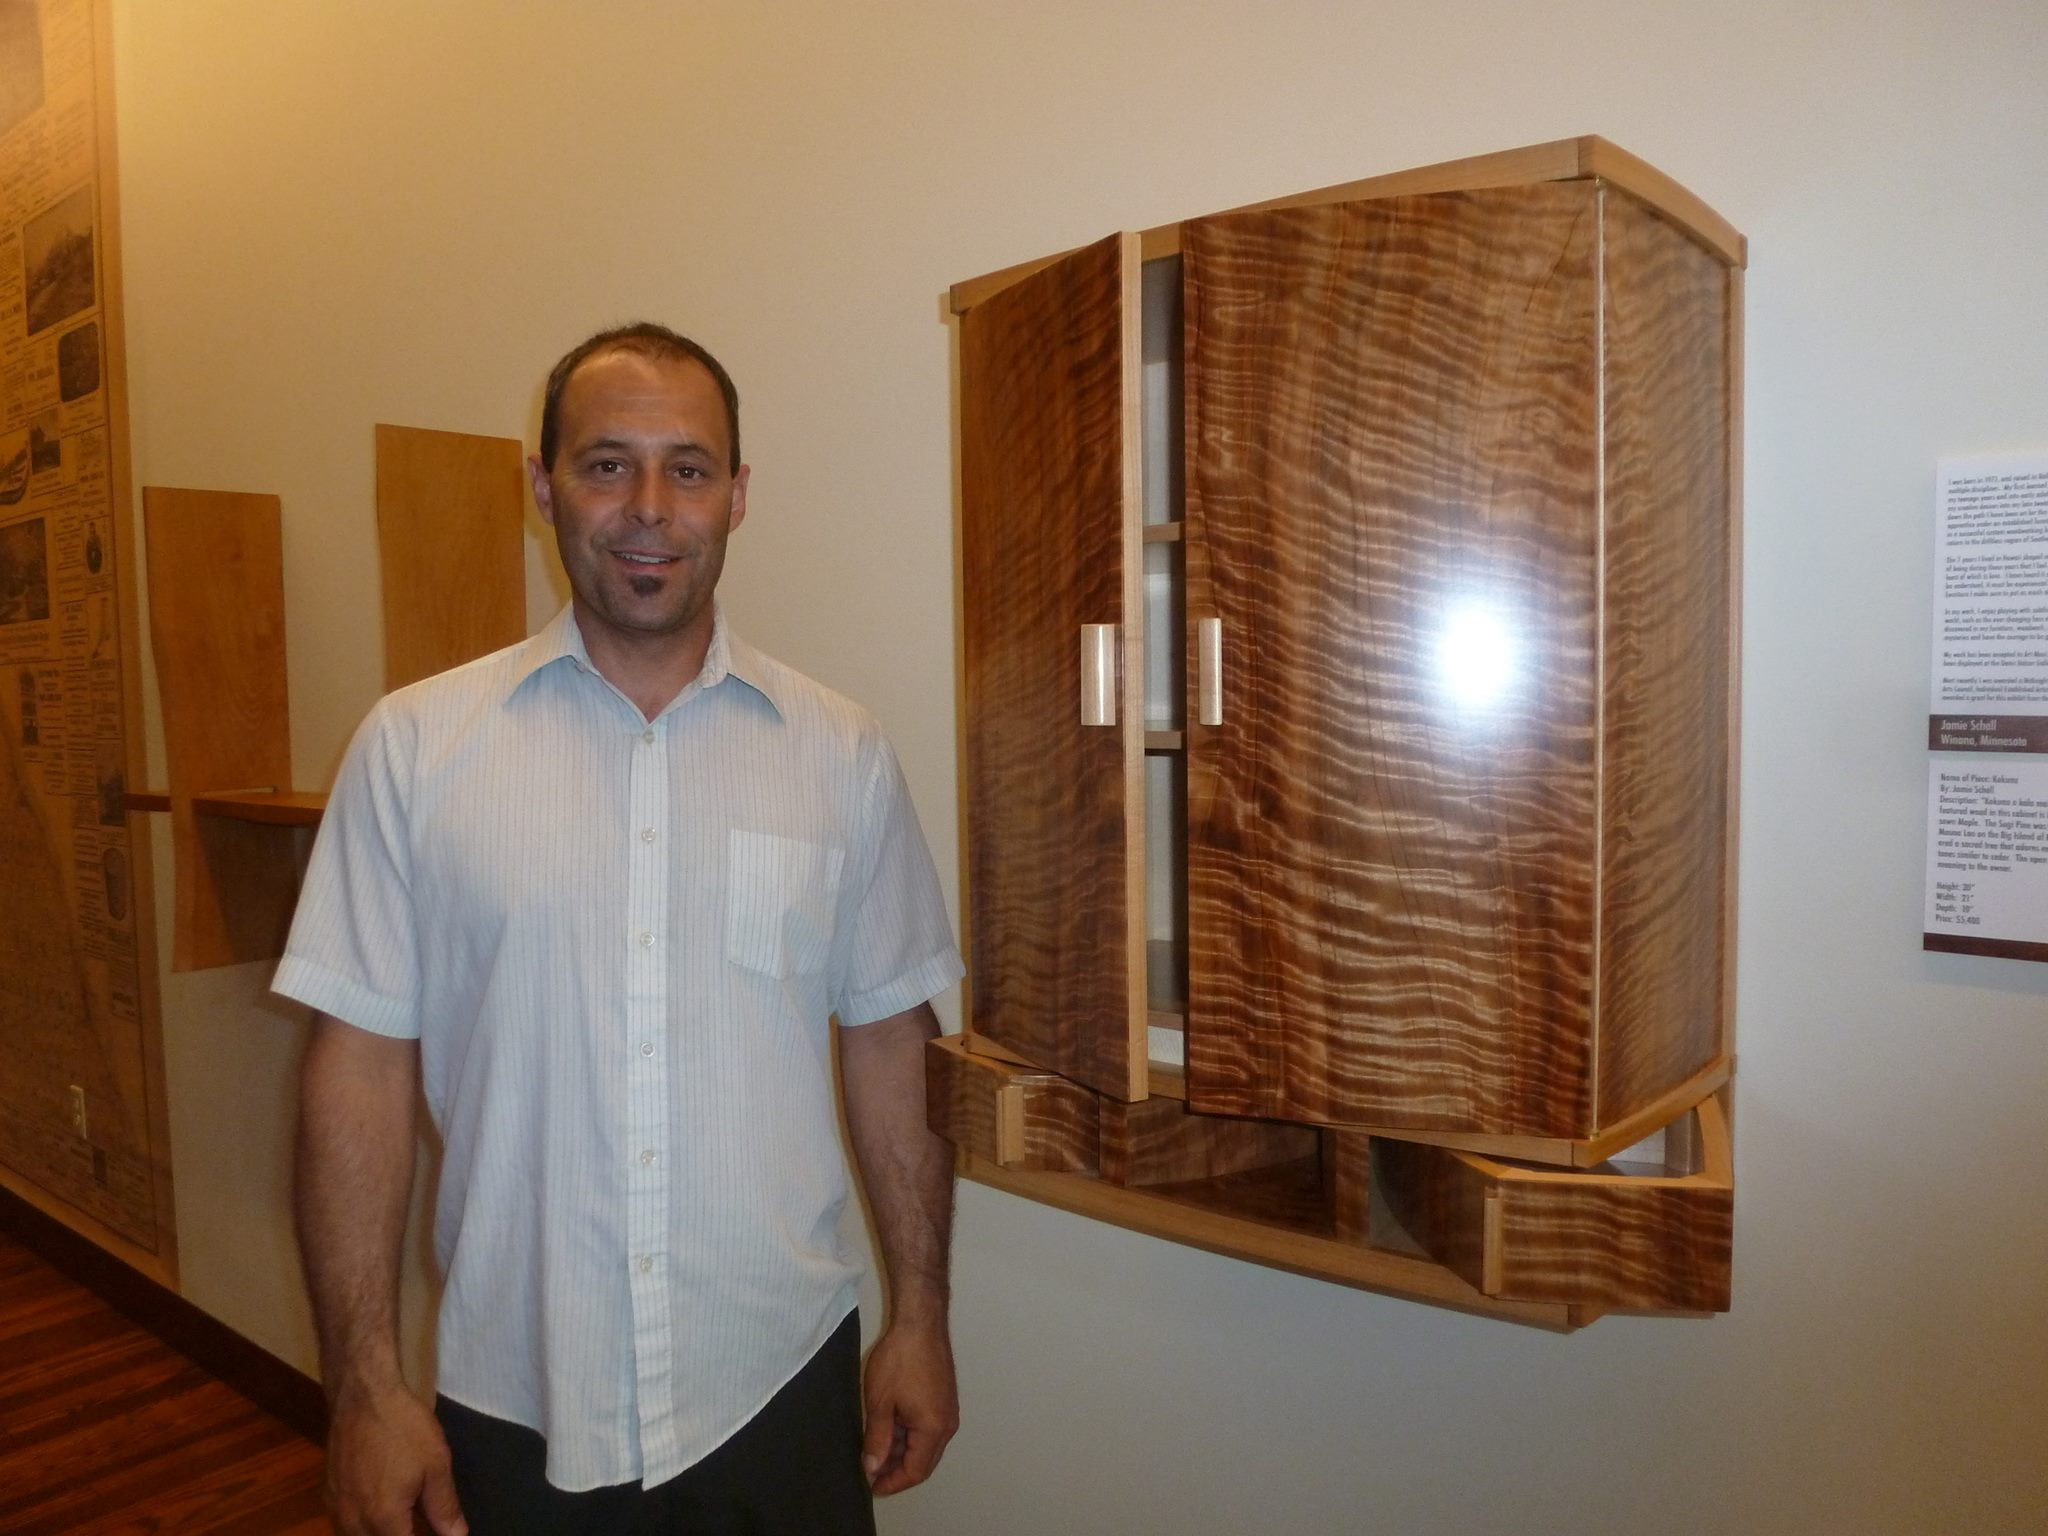 Caption: Jamie Schell and The Fine Art of Funiture Exhibit at The Winona History Center, Credit: Sheri Schell